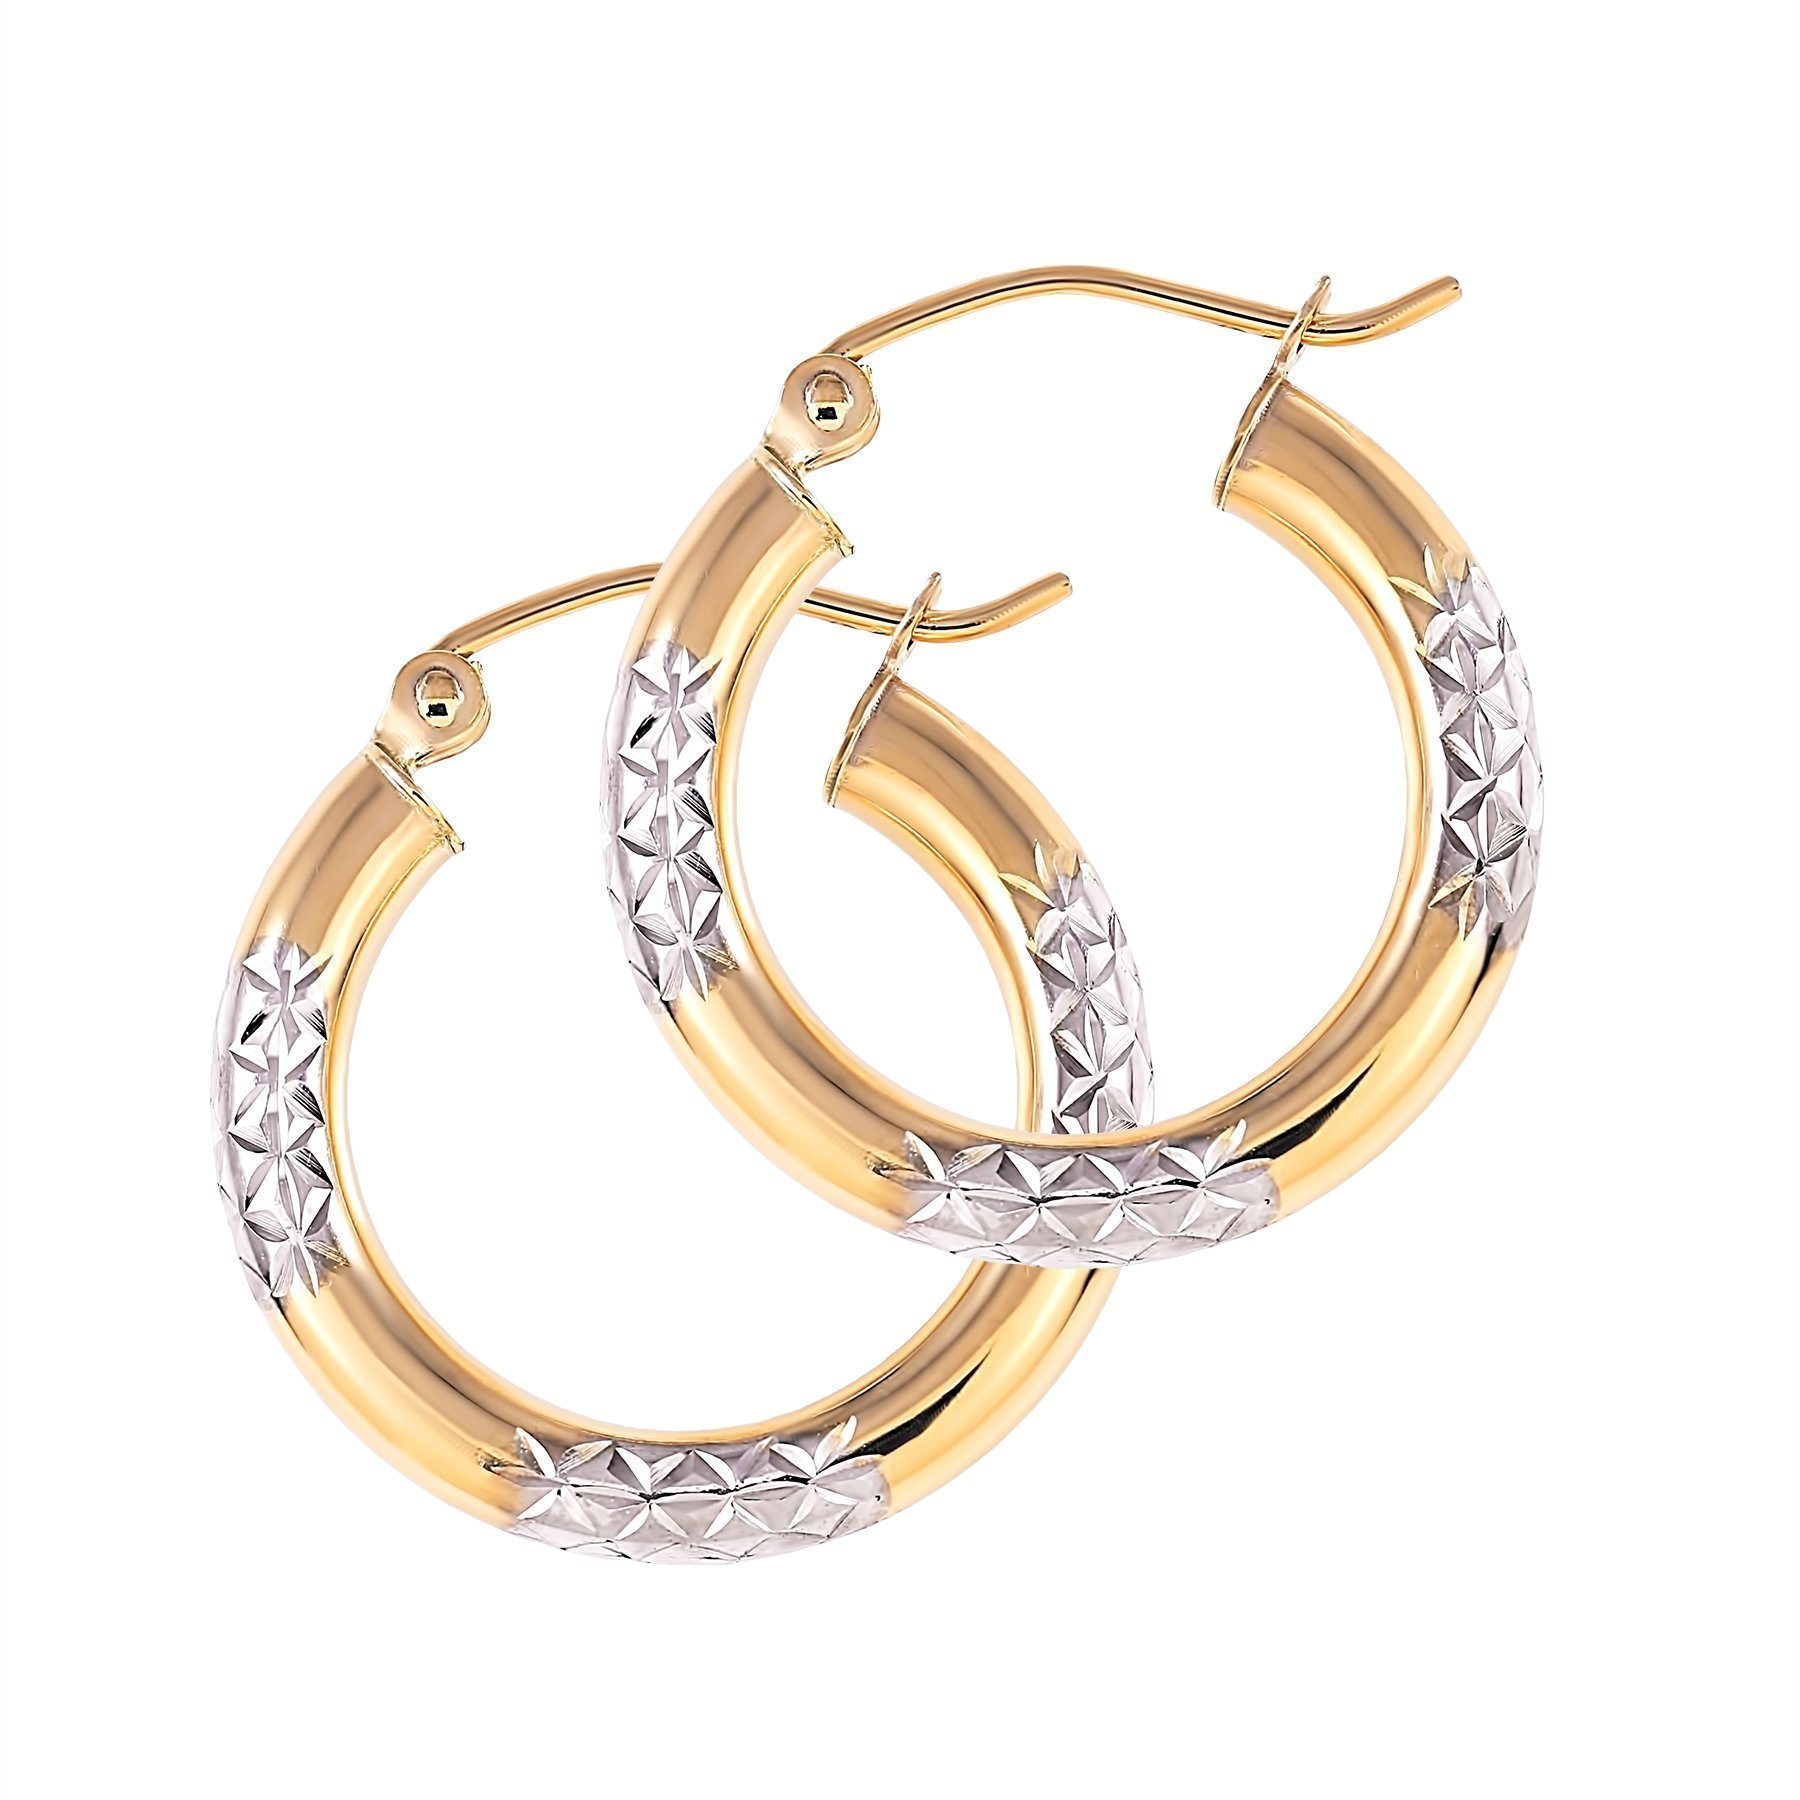 Balluccitoosi Two Tone Earrings - 14k Gold Hoop Earring for Women and Girls - Unique Jewelry for Everyday